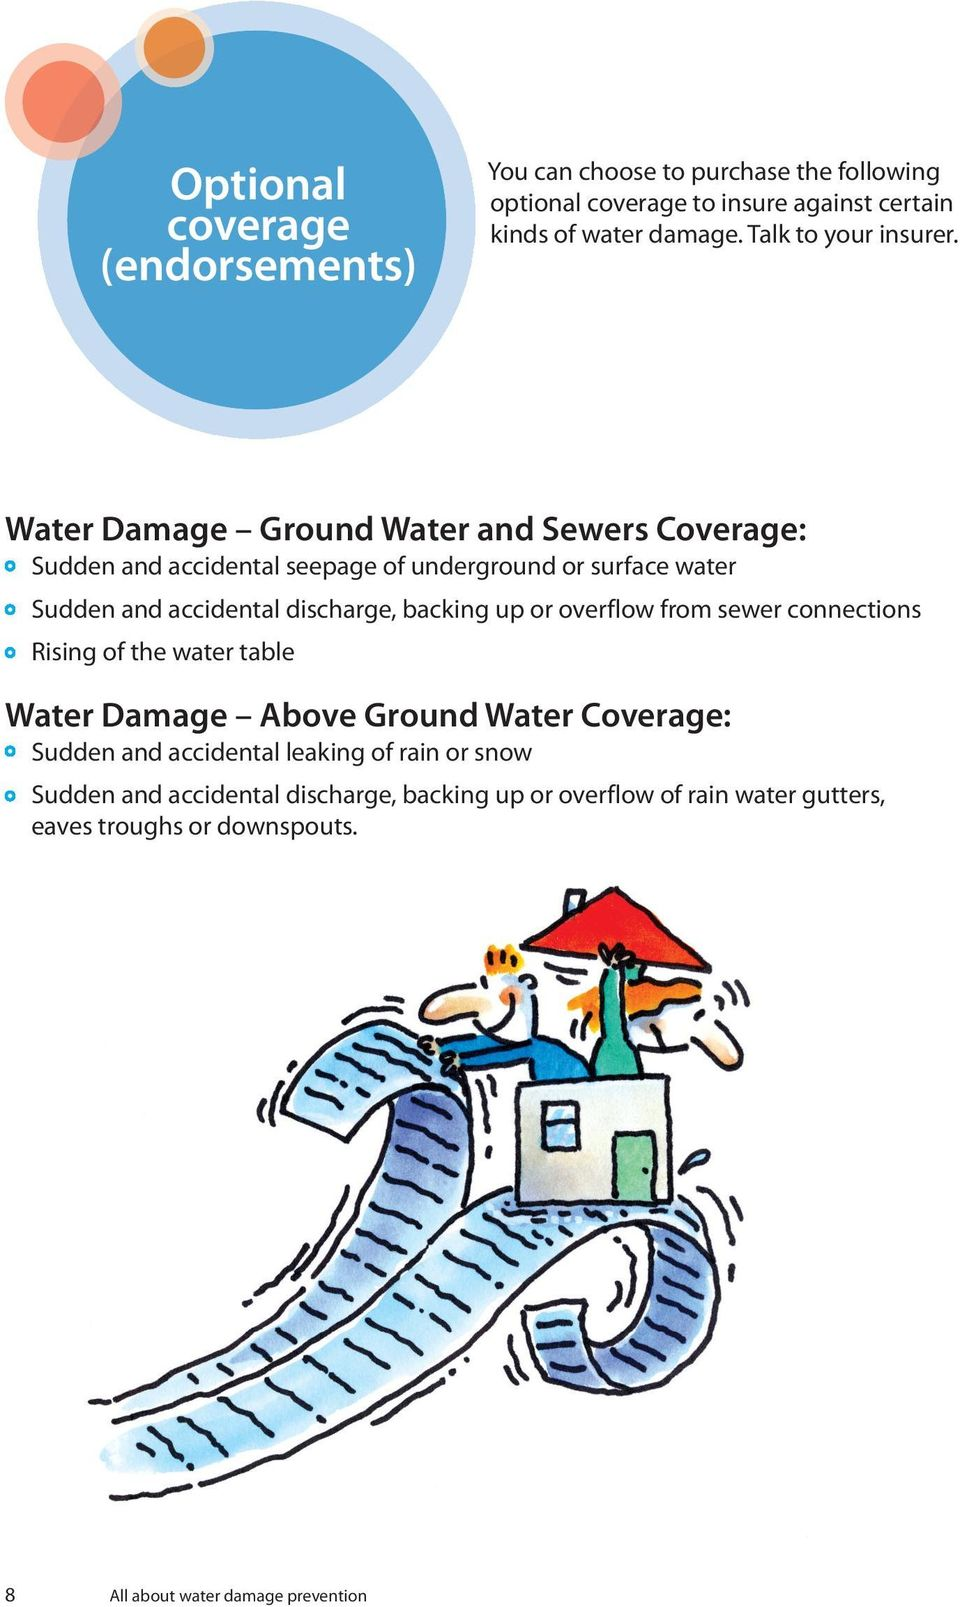 Water Damage Ground Water and Sewers Coverage: Sudden and accidental seepage of underground or surface water Sudden and accidental discharge, backing